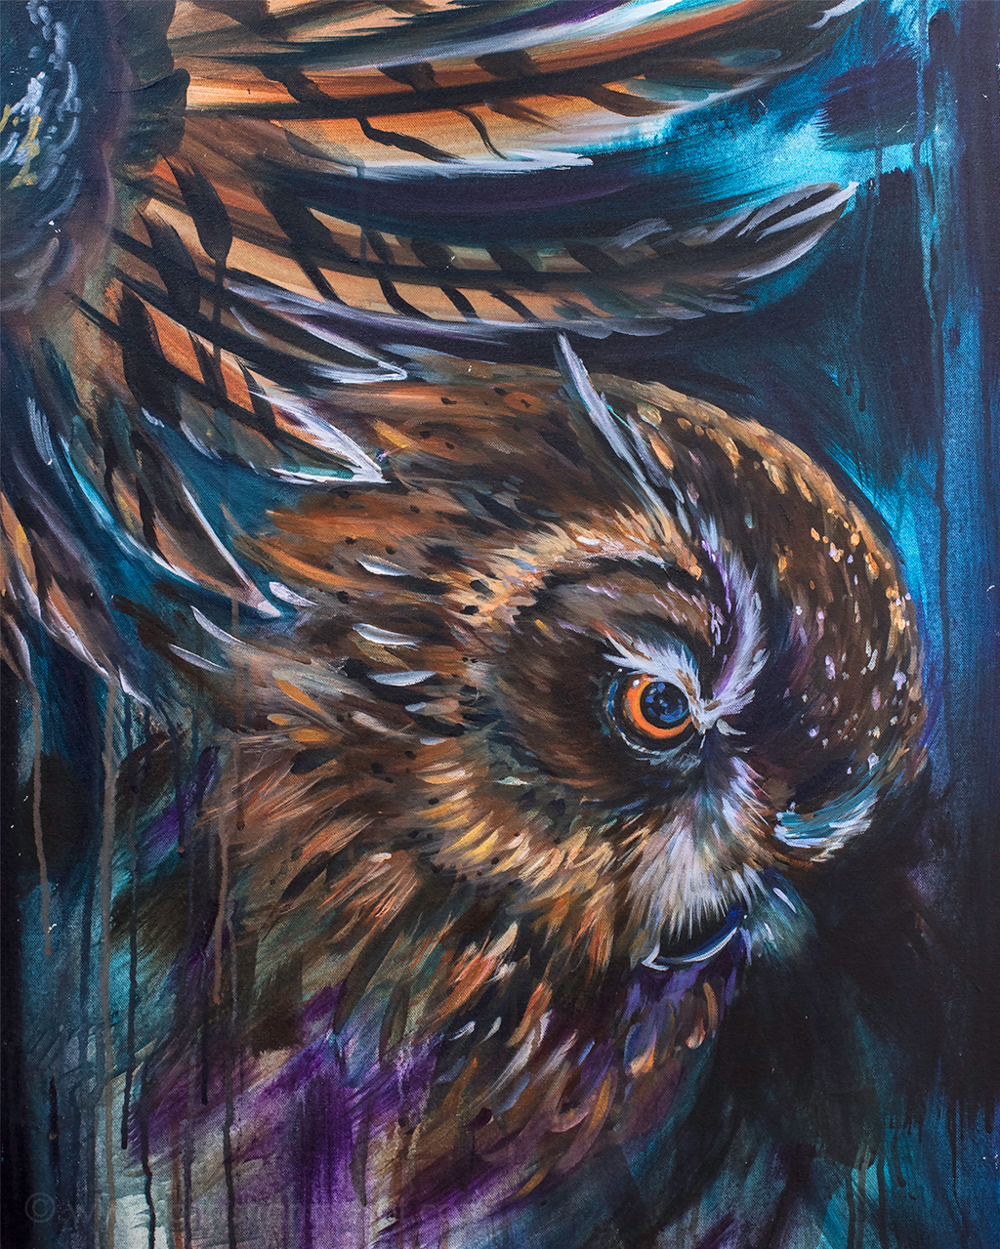 Blackbird_Gallery_Jersey_City_Christian_Masot_25.png